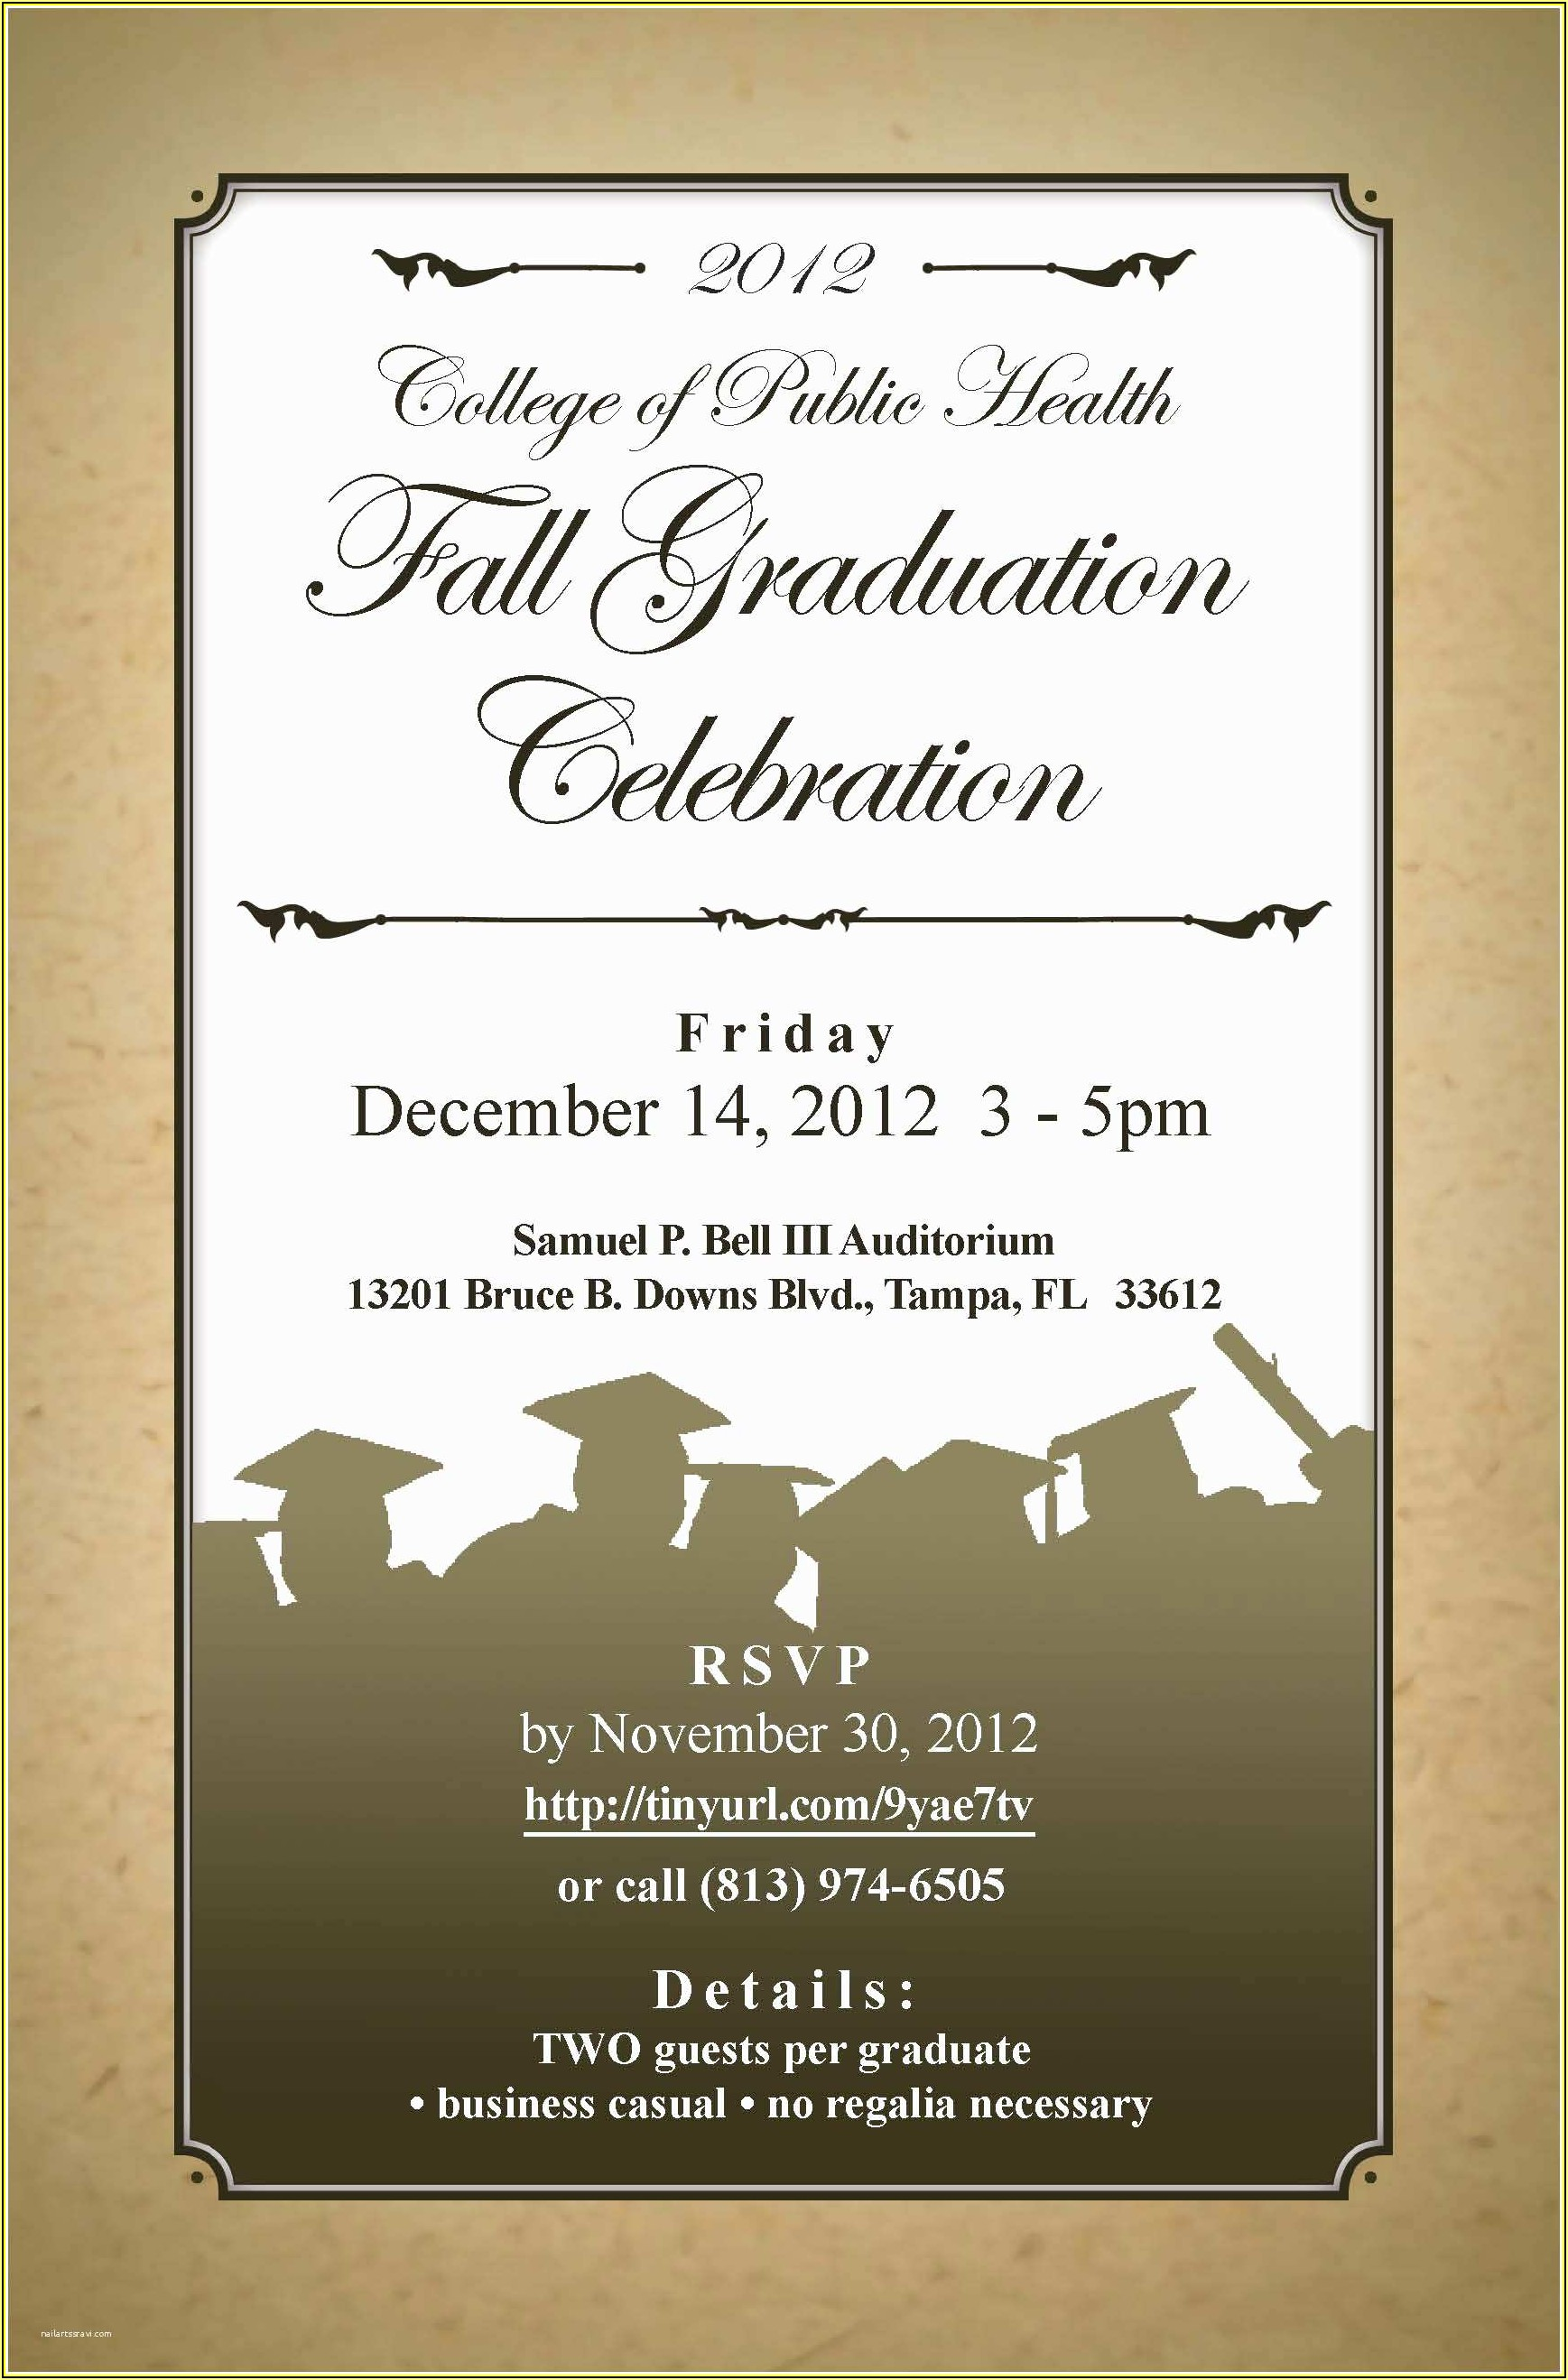 Graduation Invitation Maker Free Download